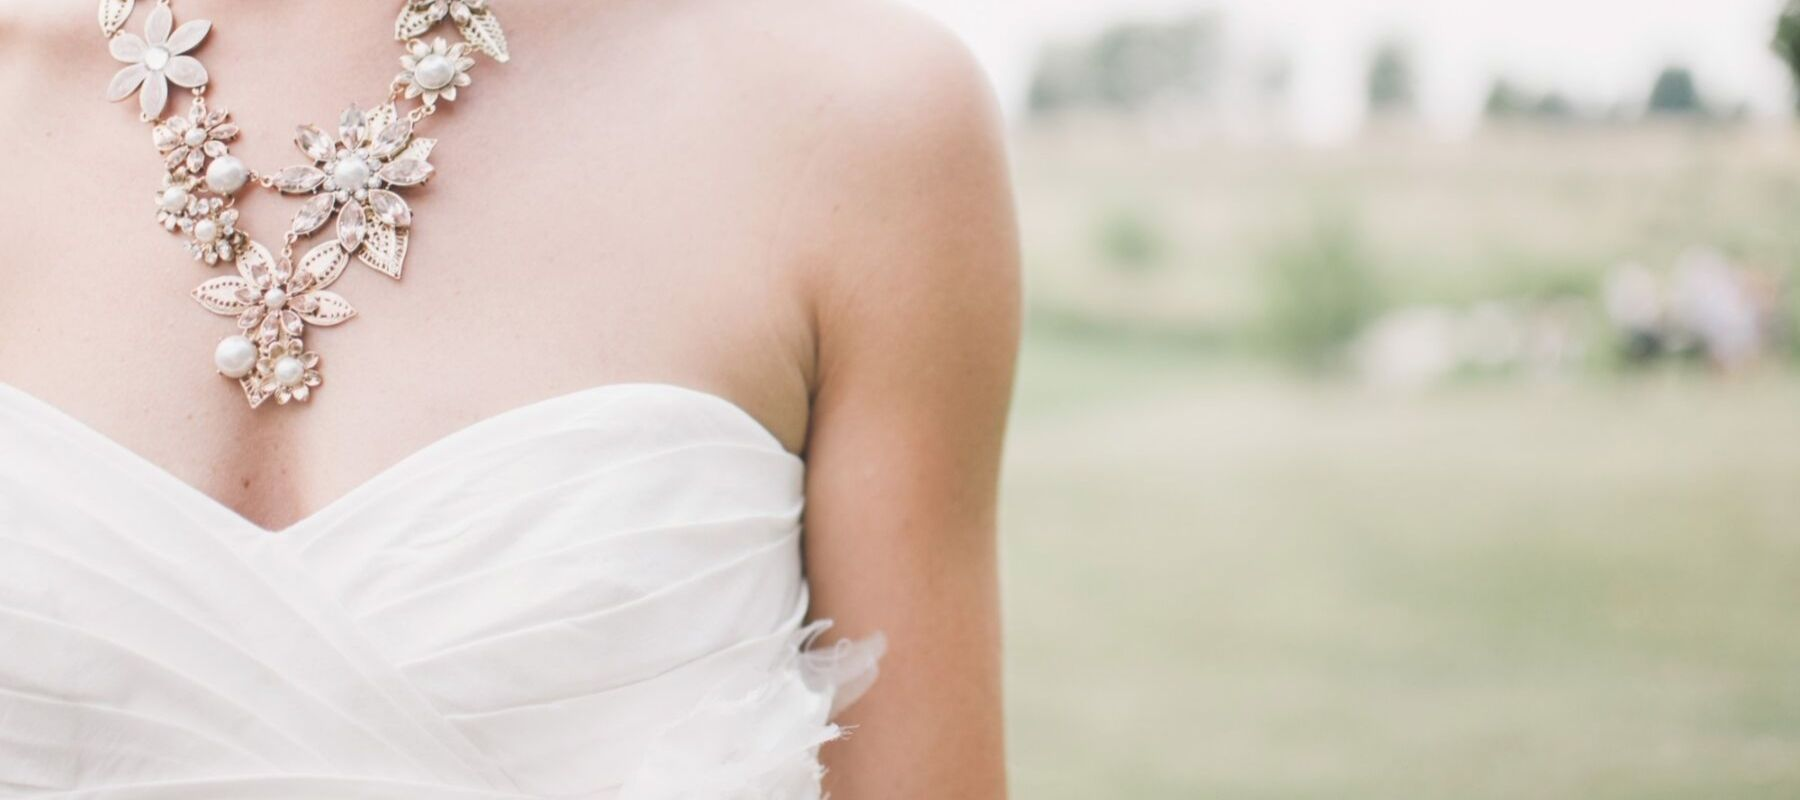 10 Important Tips to Remember When Choosing Wedding Jewelry